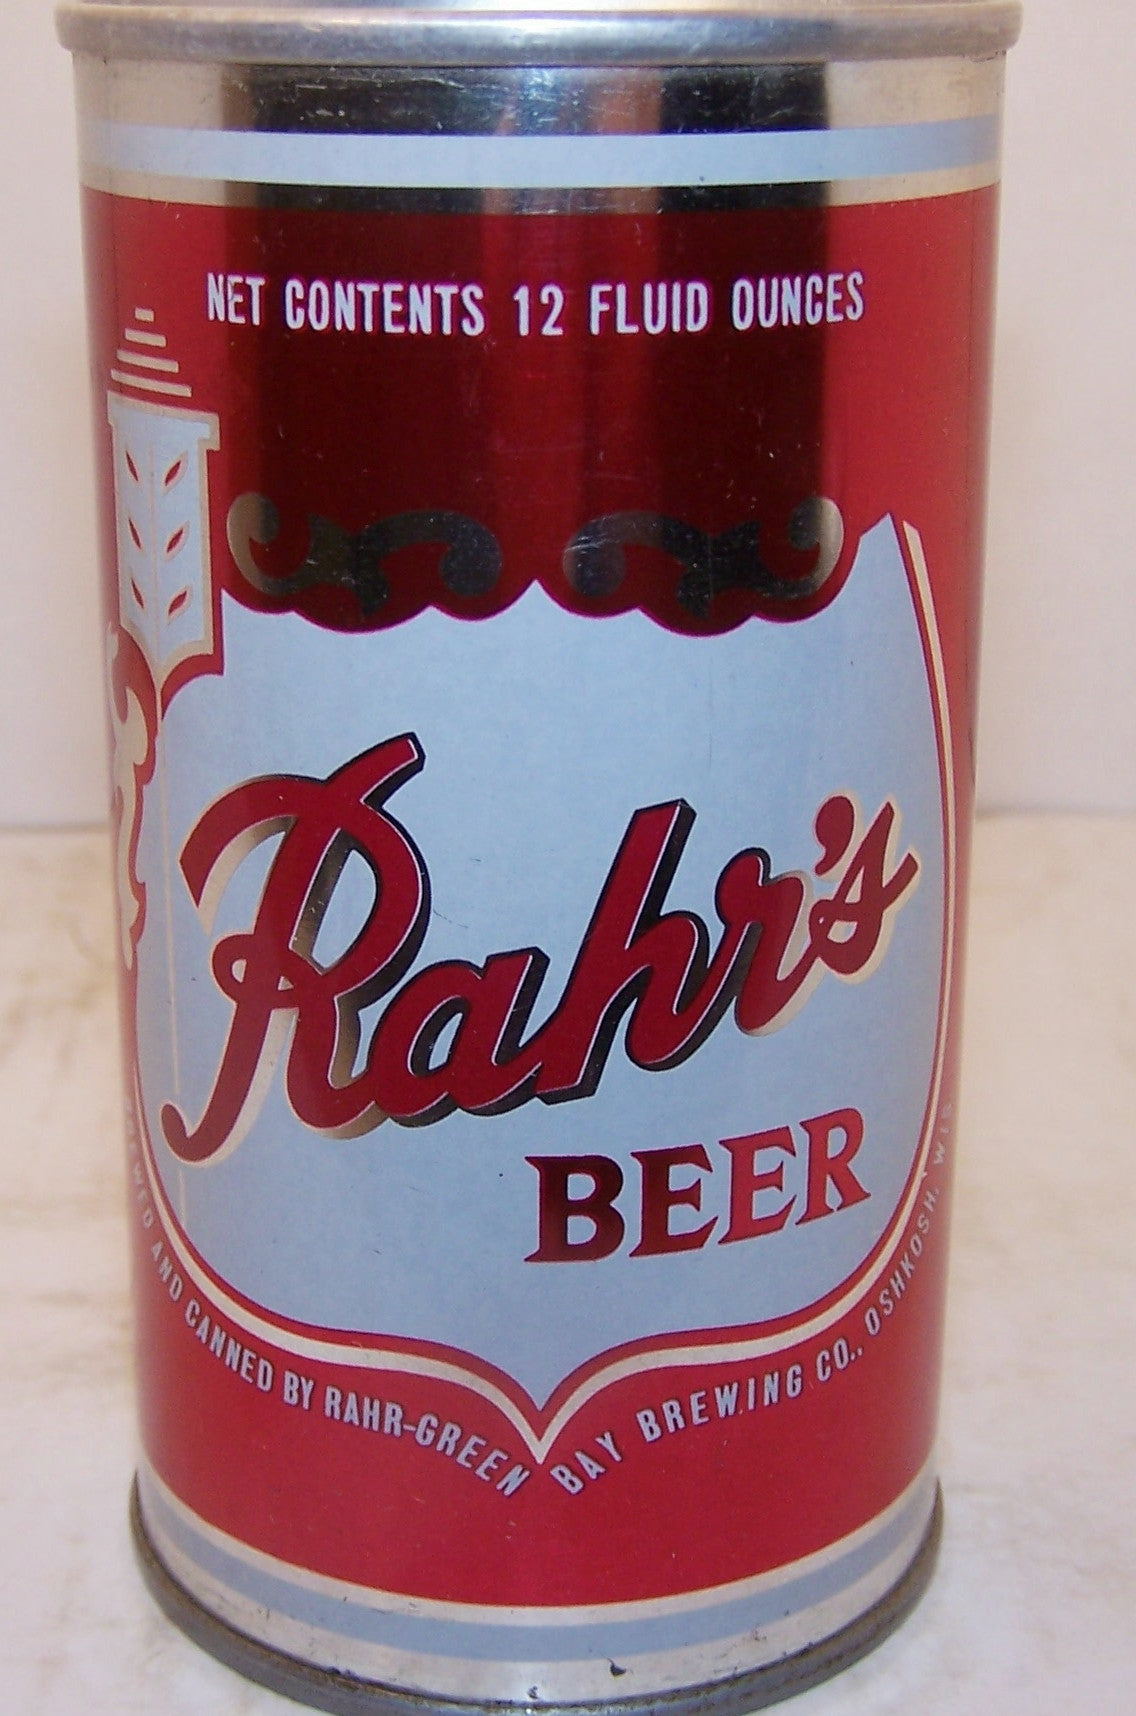 Rahr's Beer, USBC II 111-19 Grade 1/1+ Sold on 2/11/15